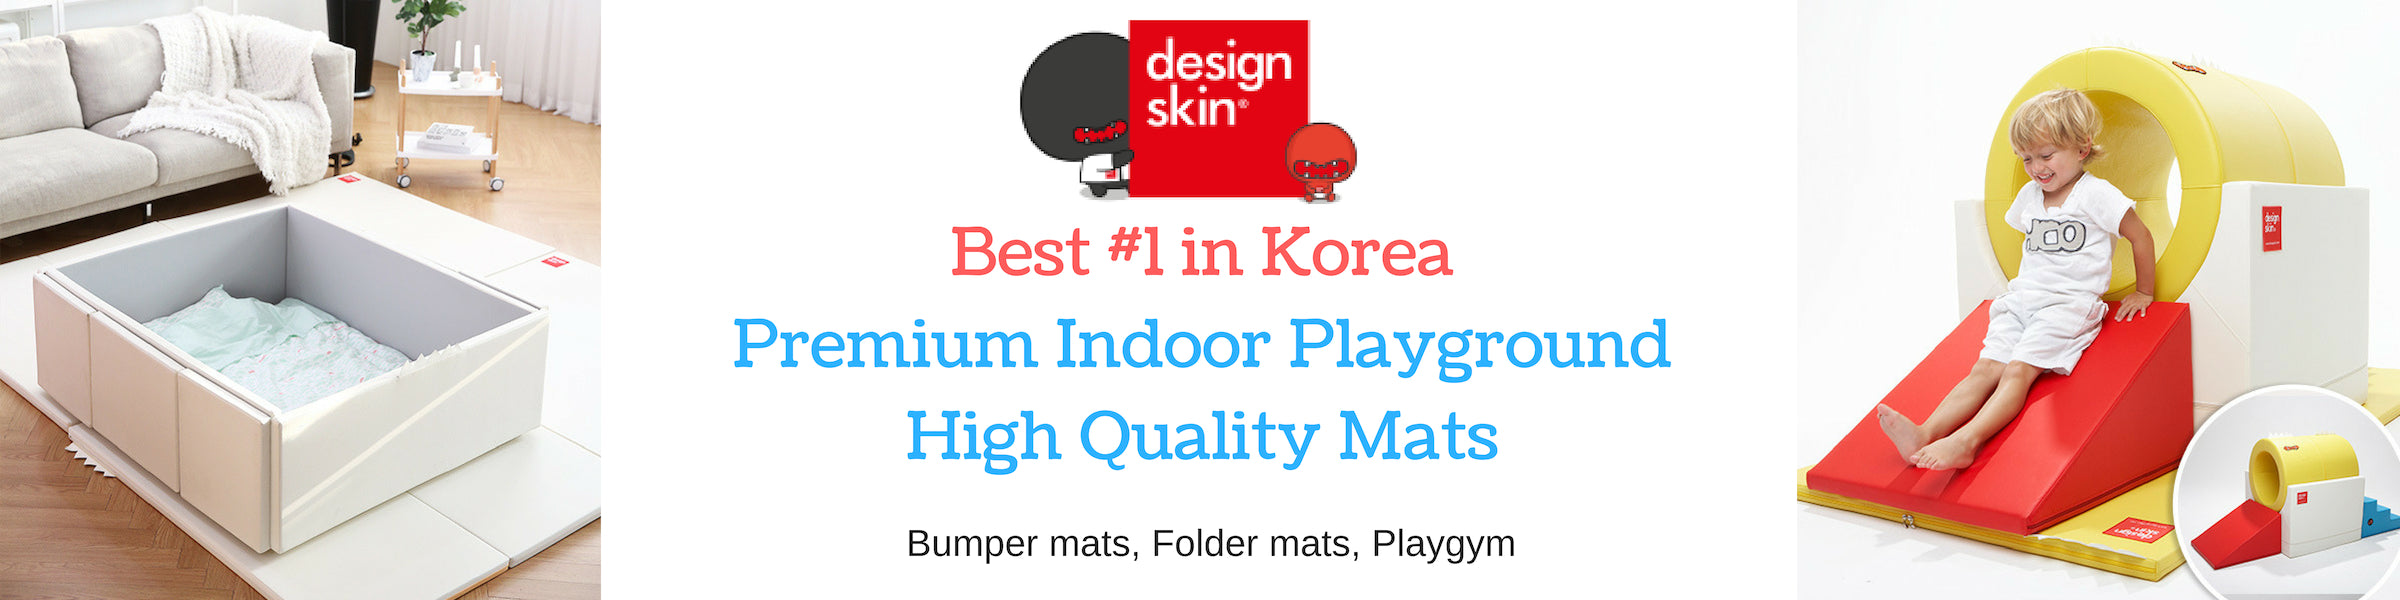 Designskin Indoor Playground Mats Singapore